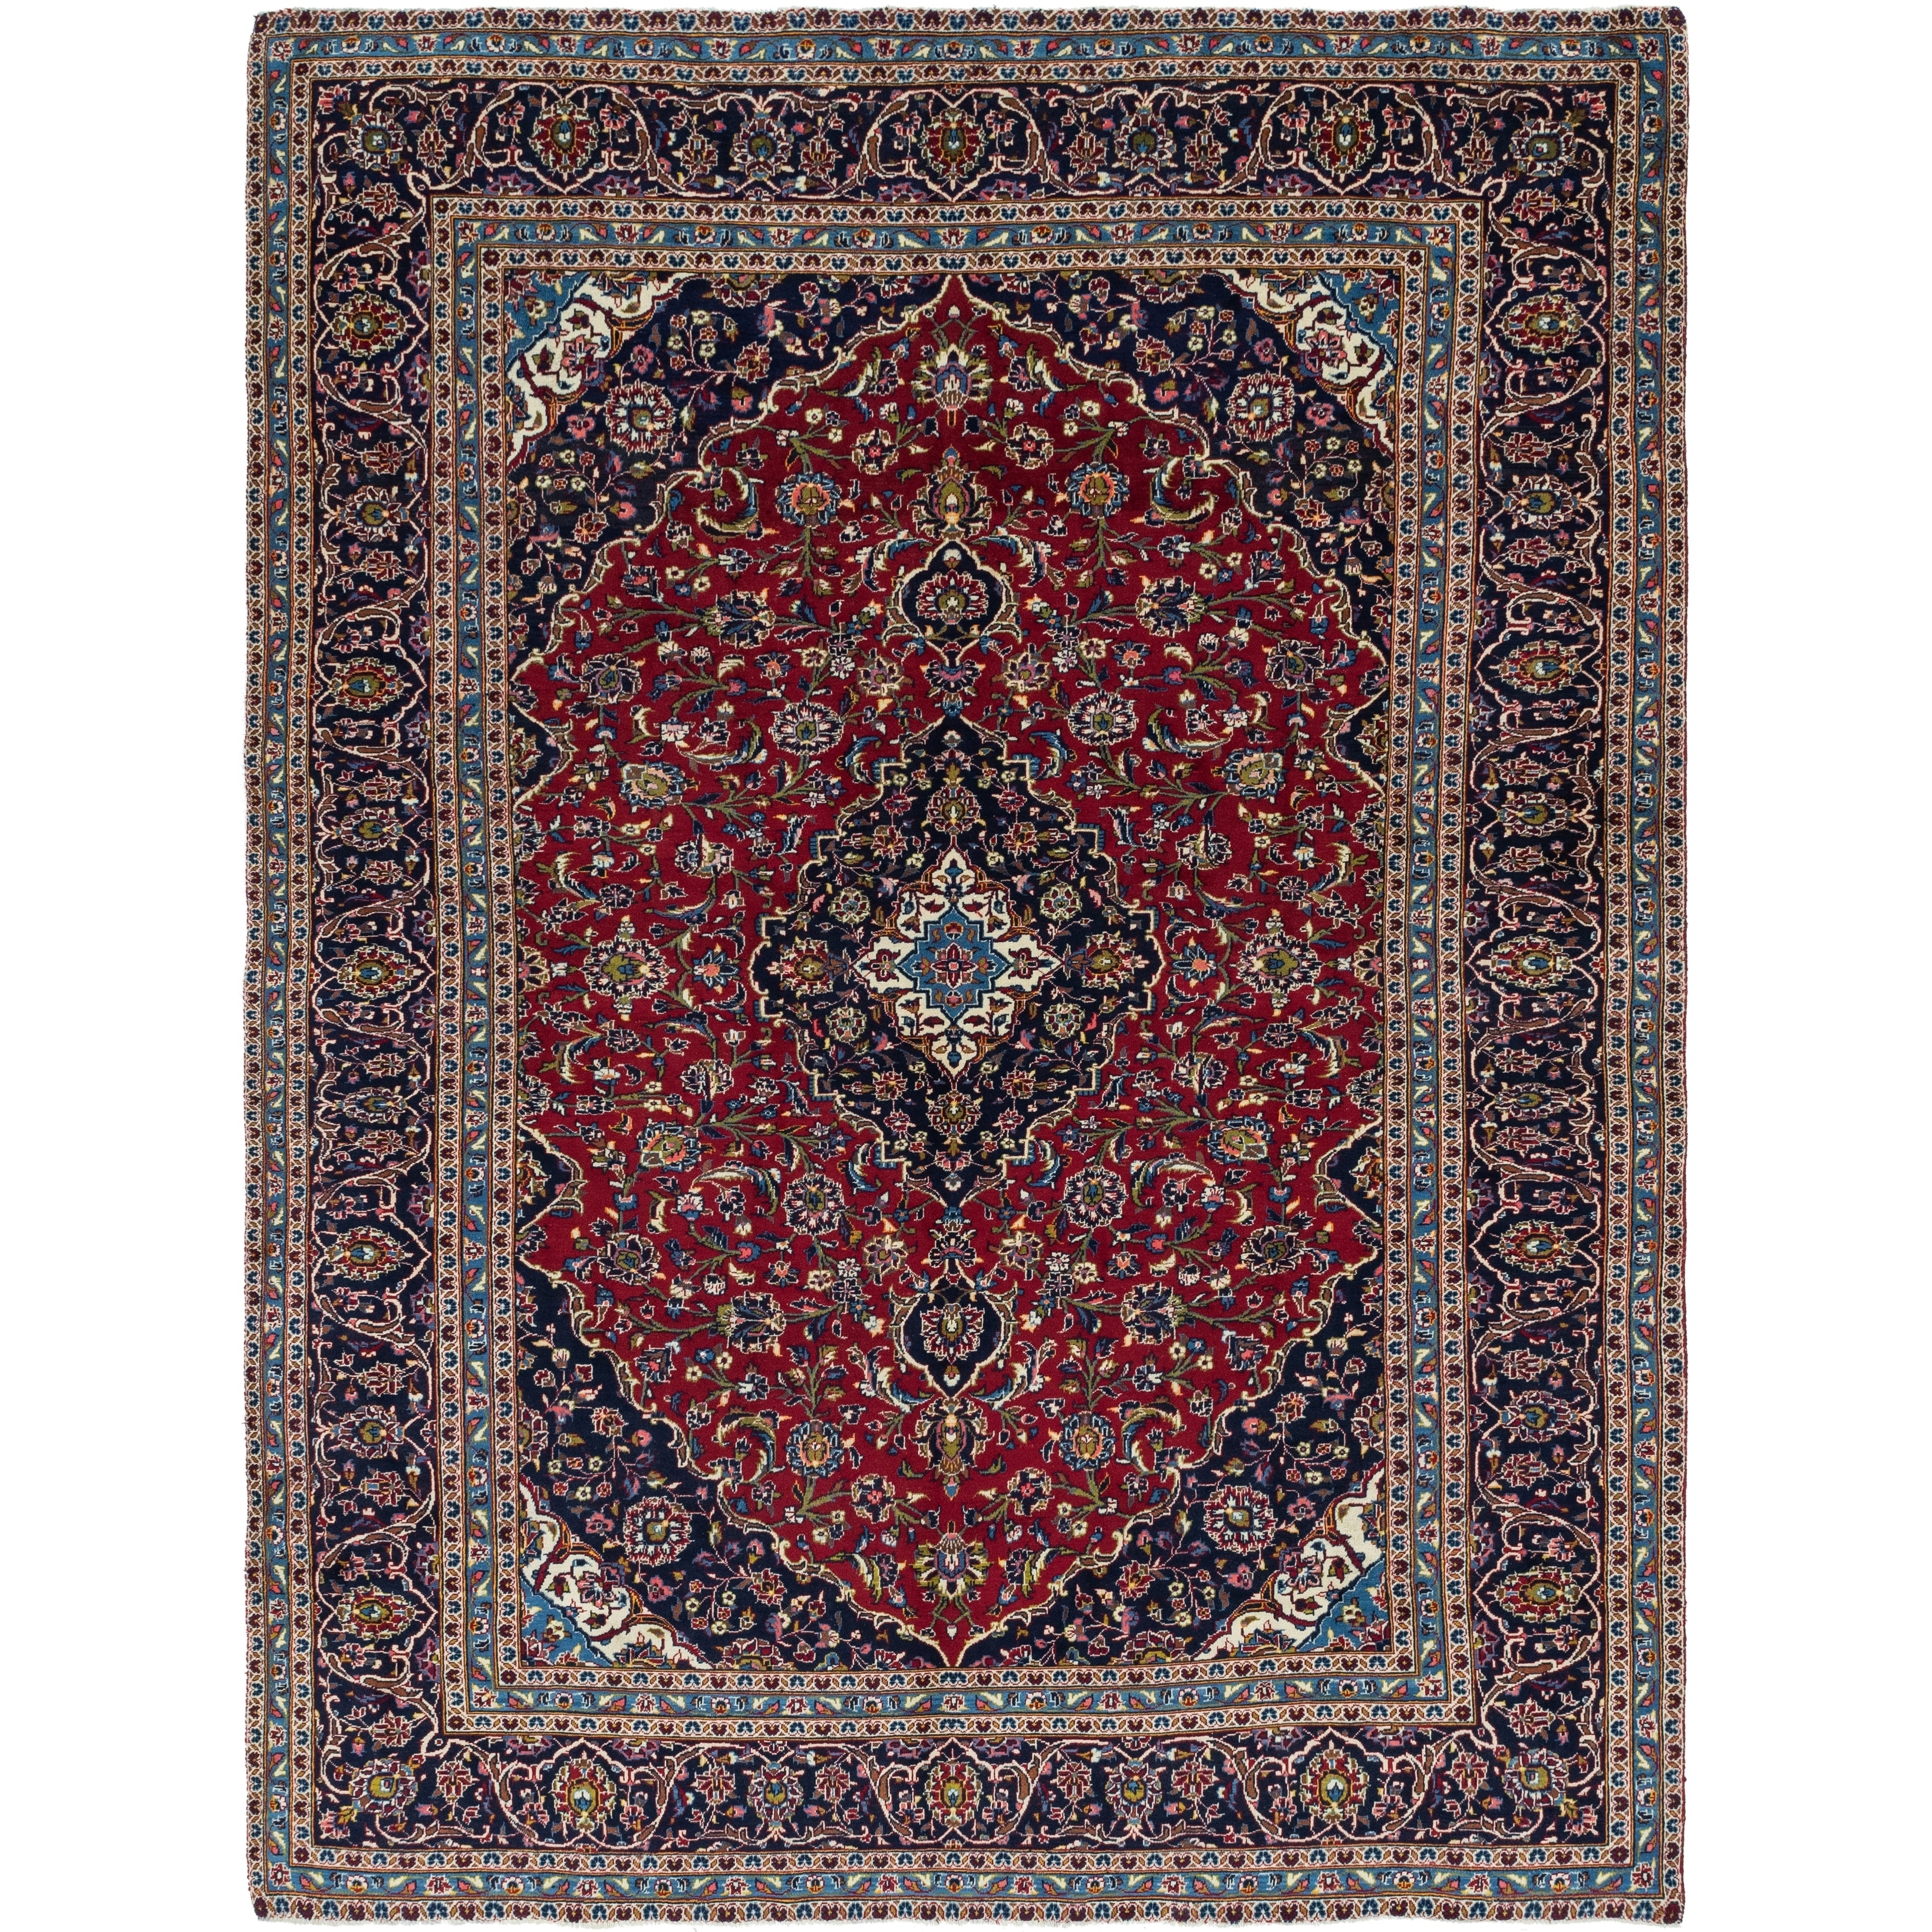 Hand Knotted Kashan Wool Area Rug - 9 5 x 12 7 (Red - 9 5 x 12 7)